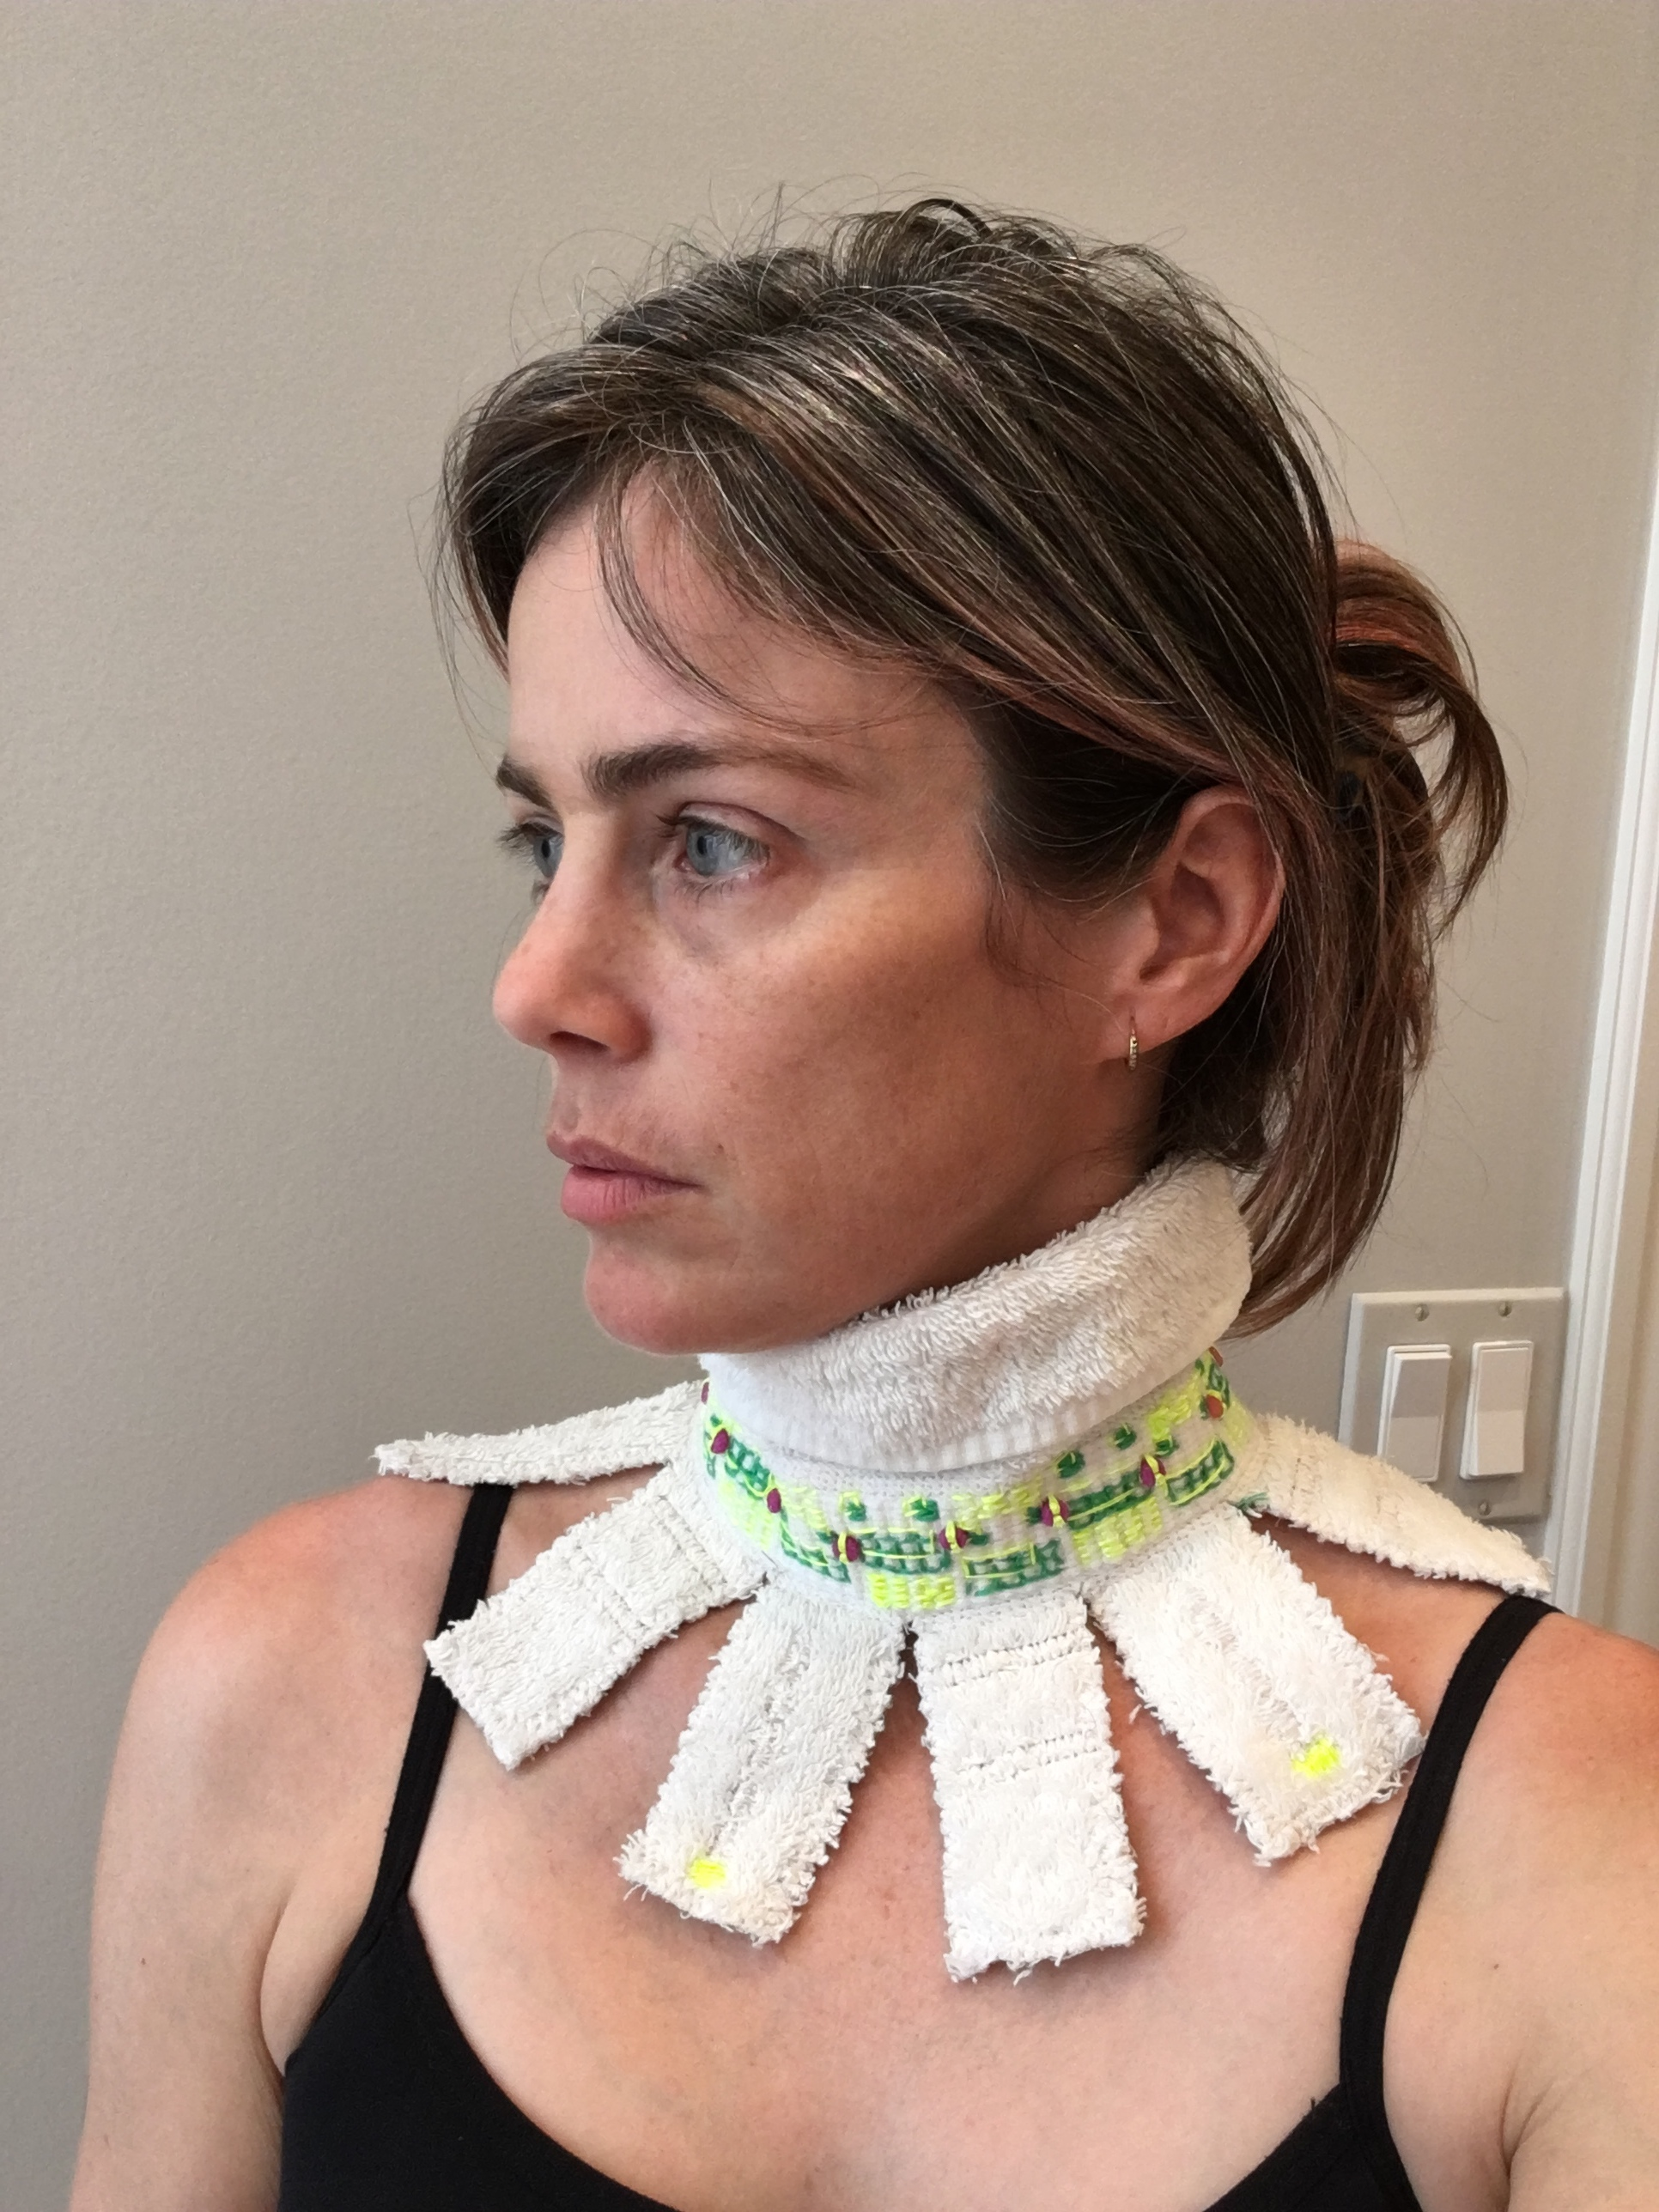 Dissent Collar #18 (Terry cloth, embroidery floss, thread, safety pin, beads)